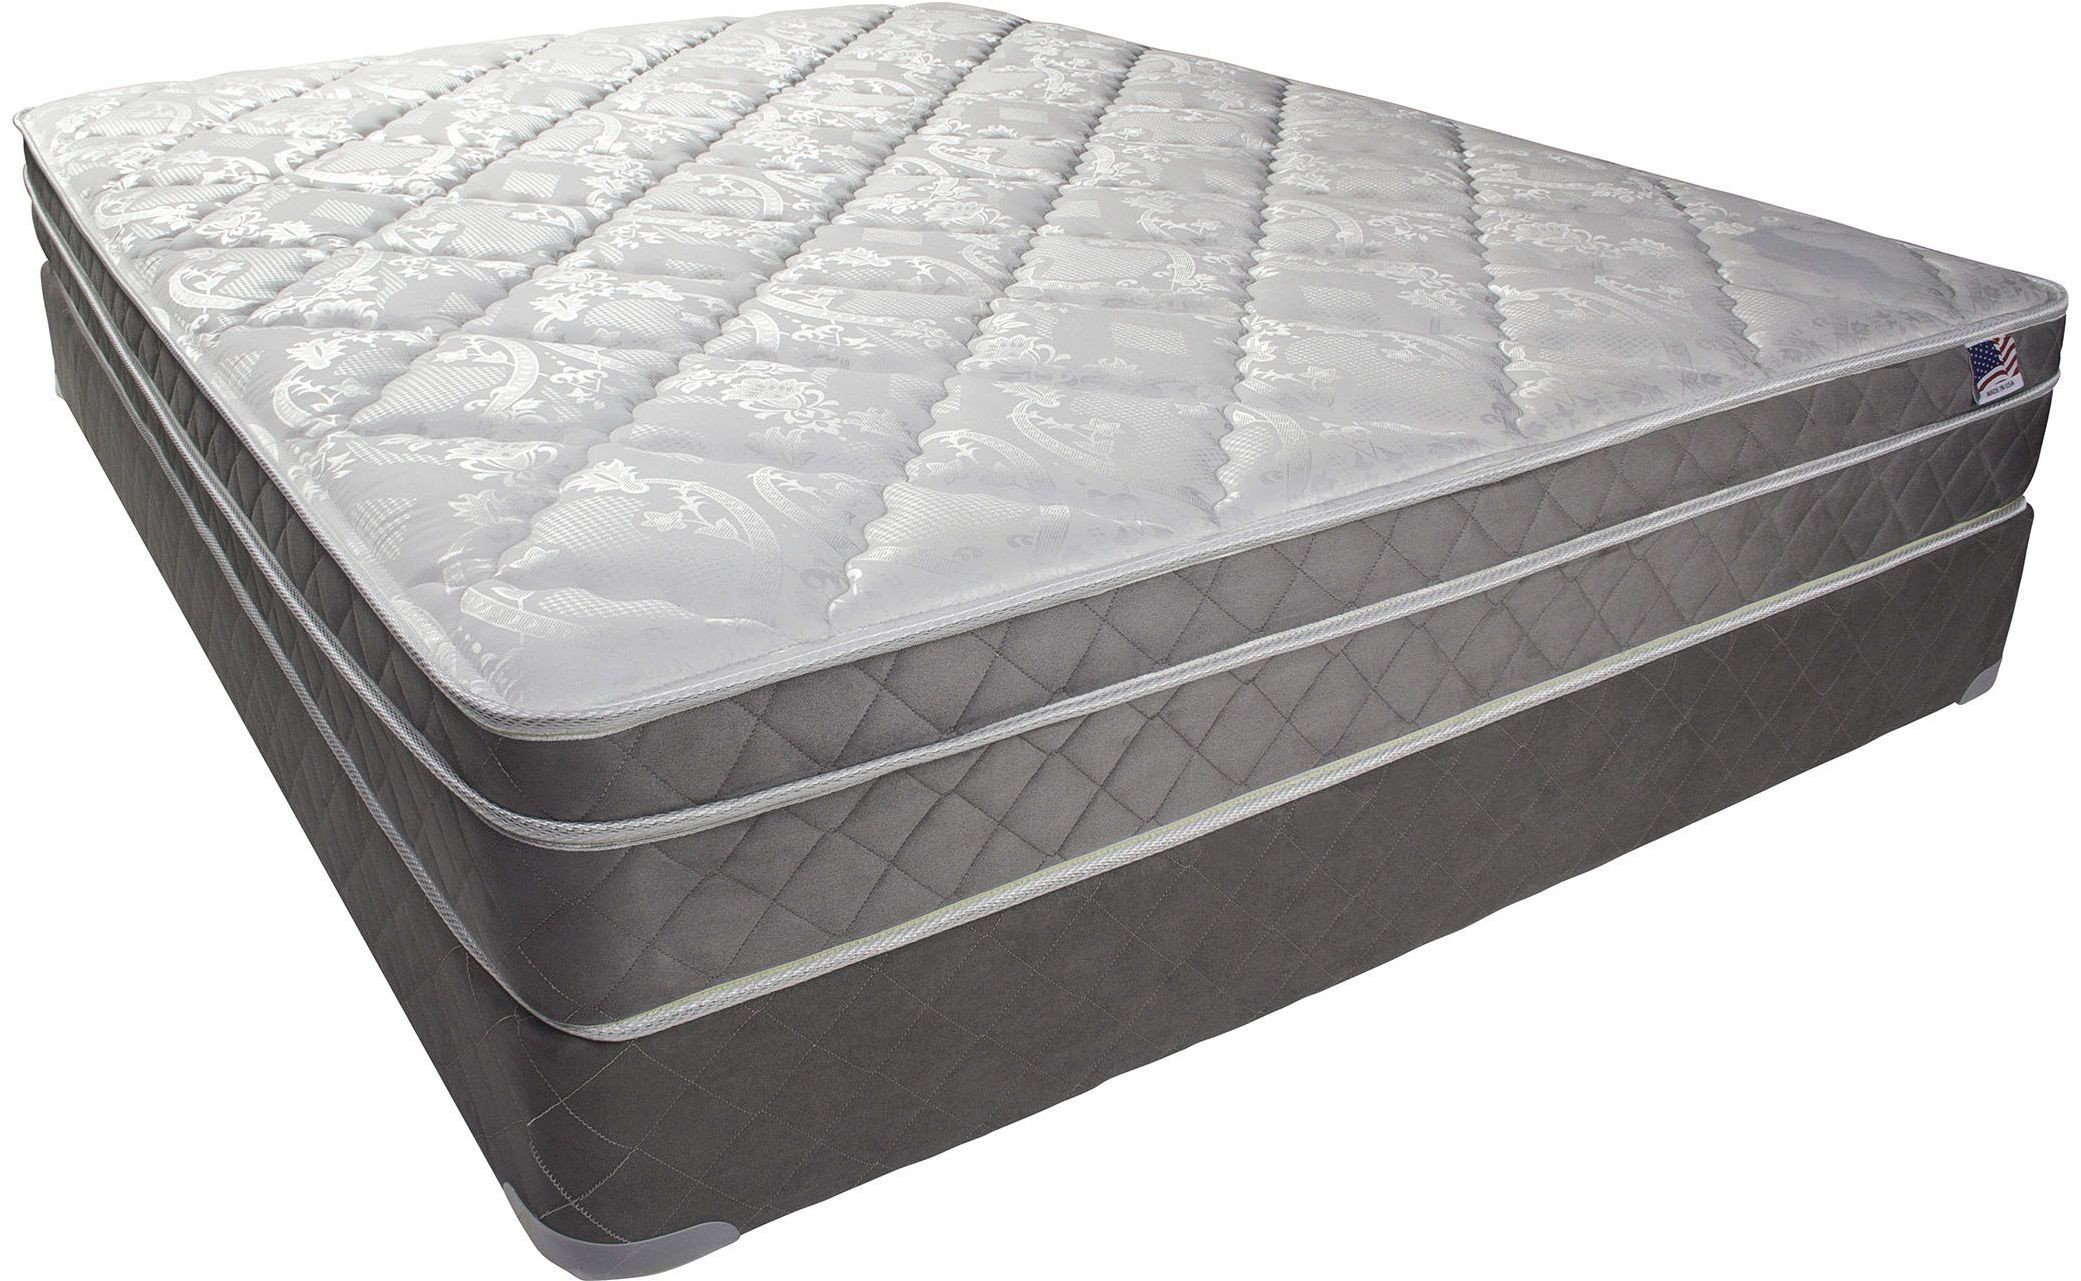 Pillow Top King Mattress Kalina 9